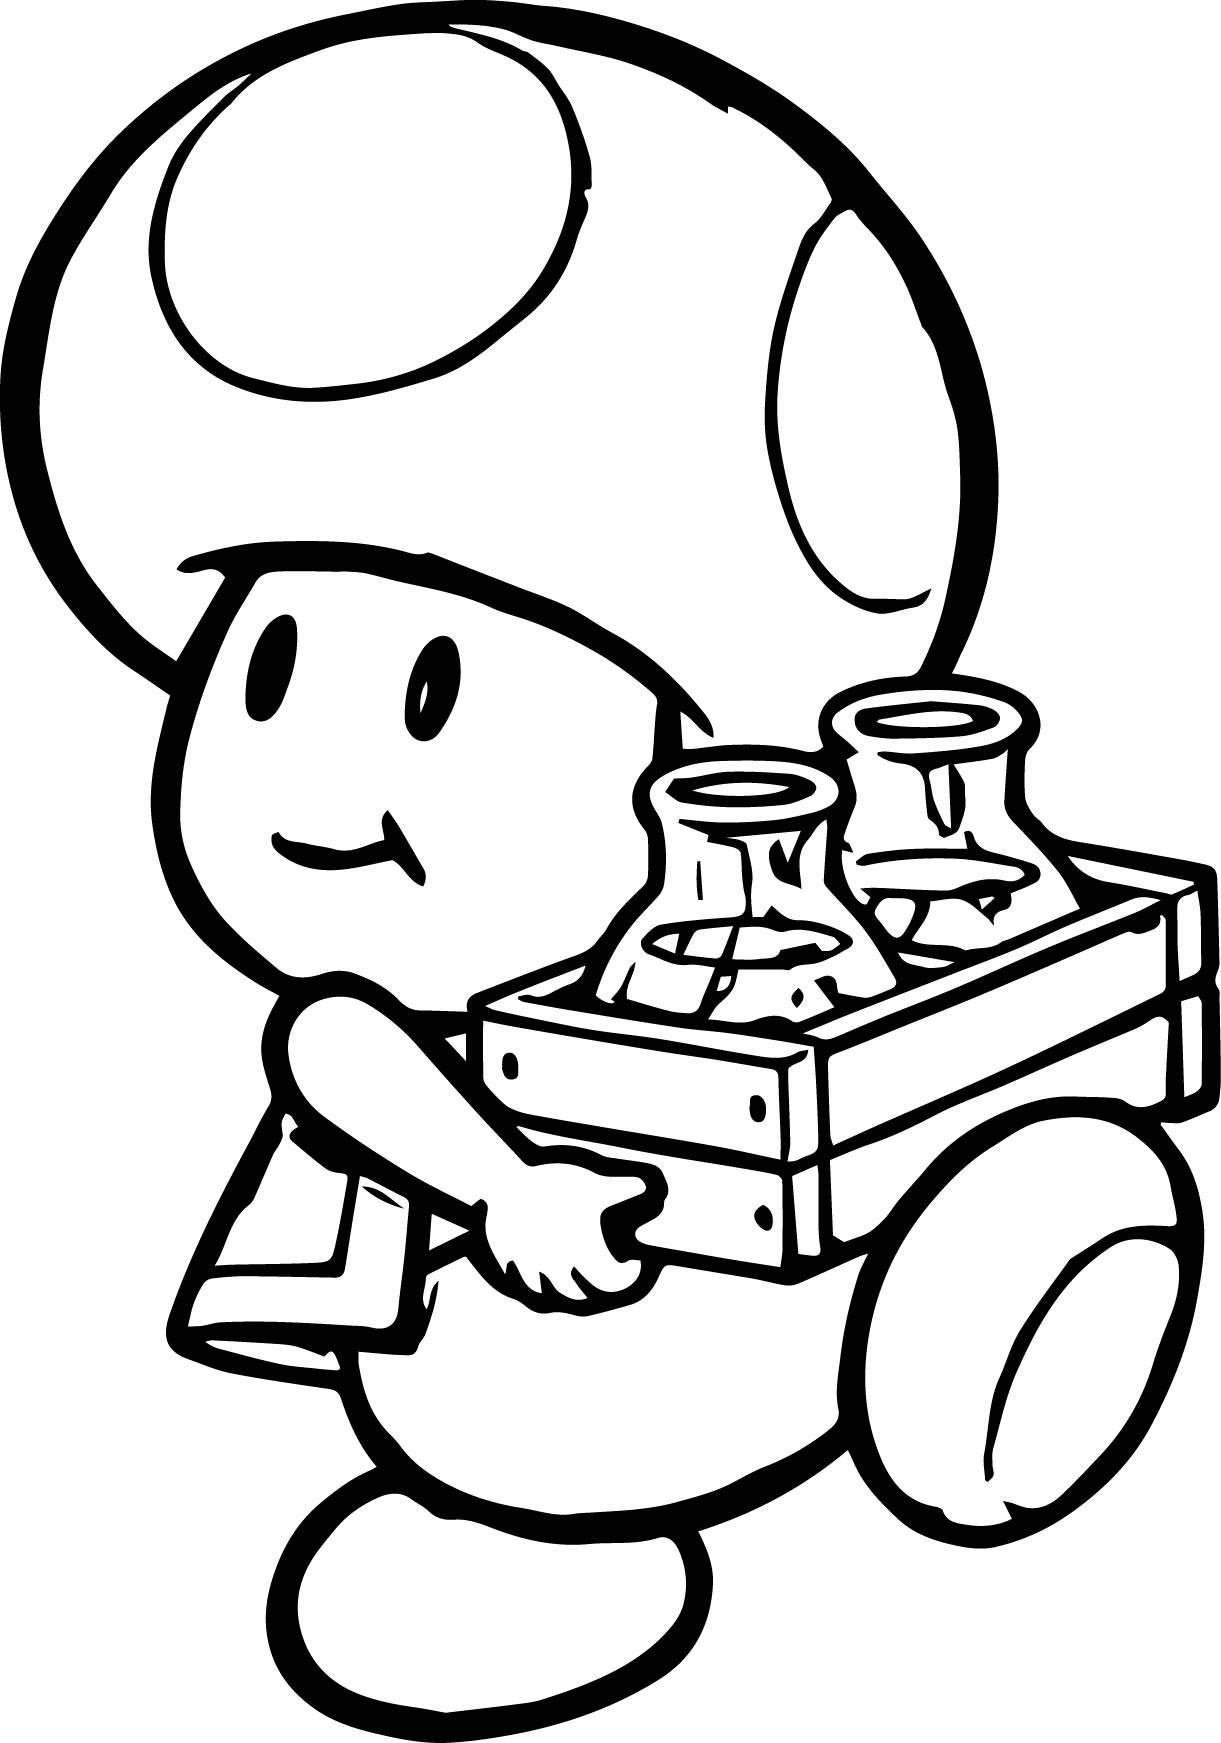 Nintendo Mario Mushroom Character Coloring Page Pages Download Of Toad Mario Drawing at Getdrawings Gallery